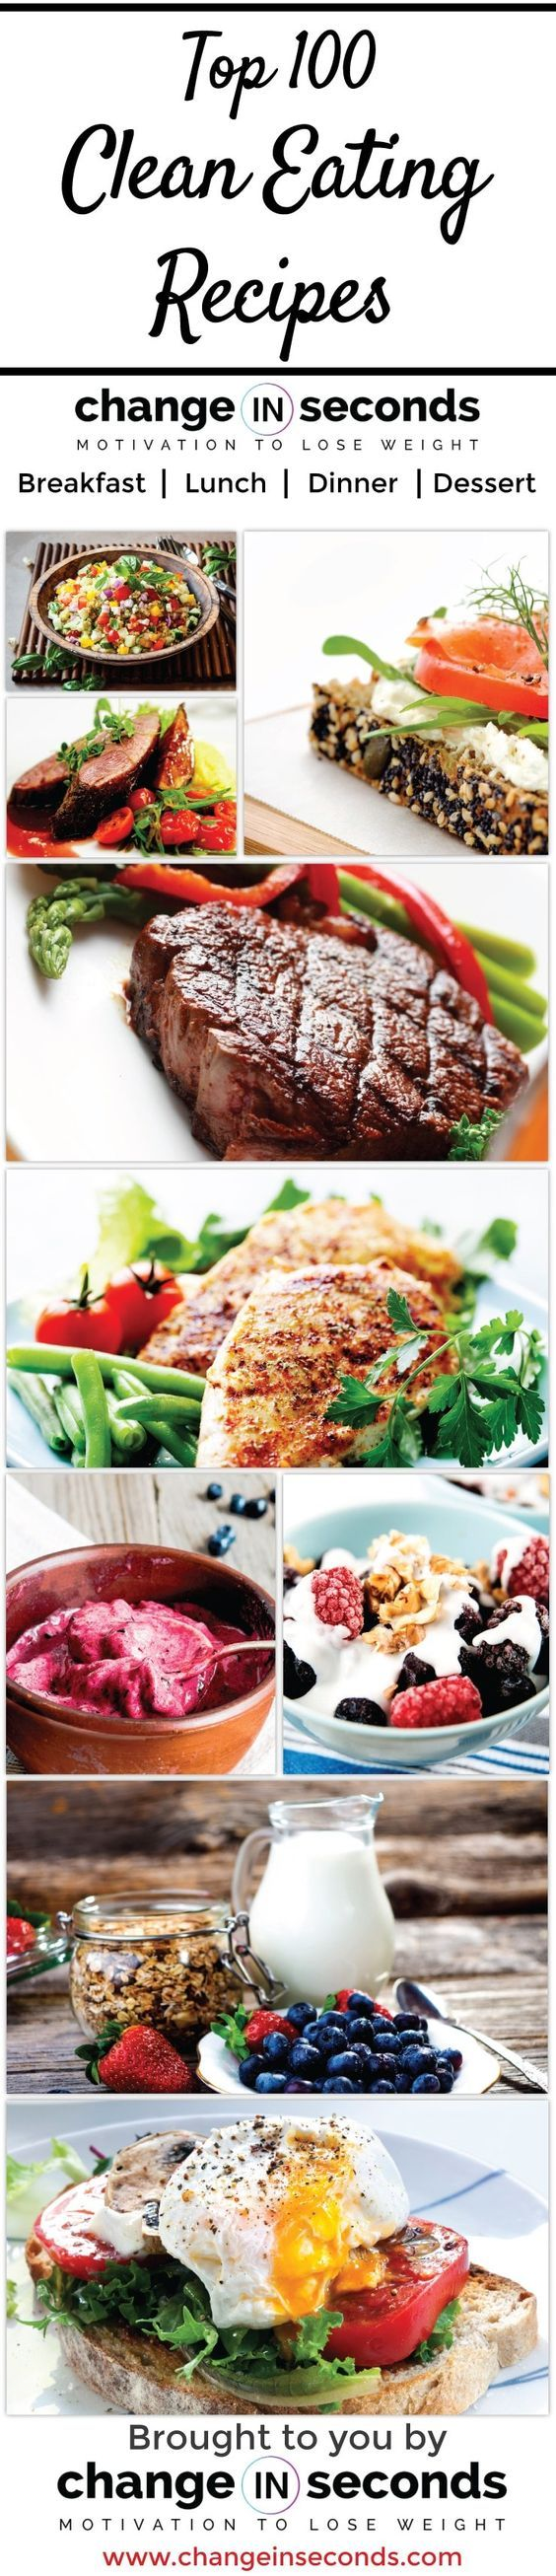 Clean Eating Recipes https://www.changeinseconds.com/top-100-clean-eating-recipes/